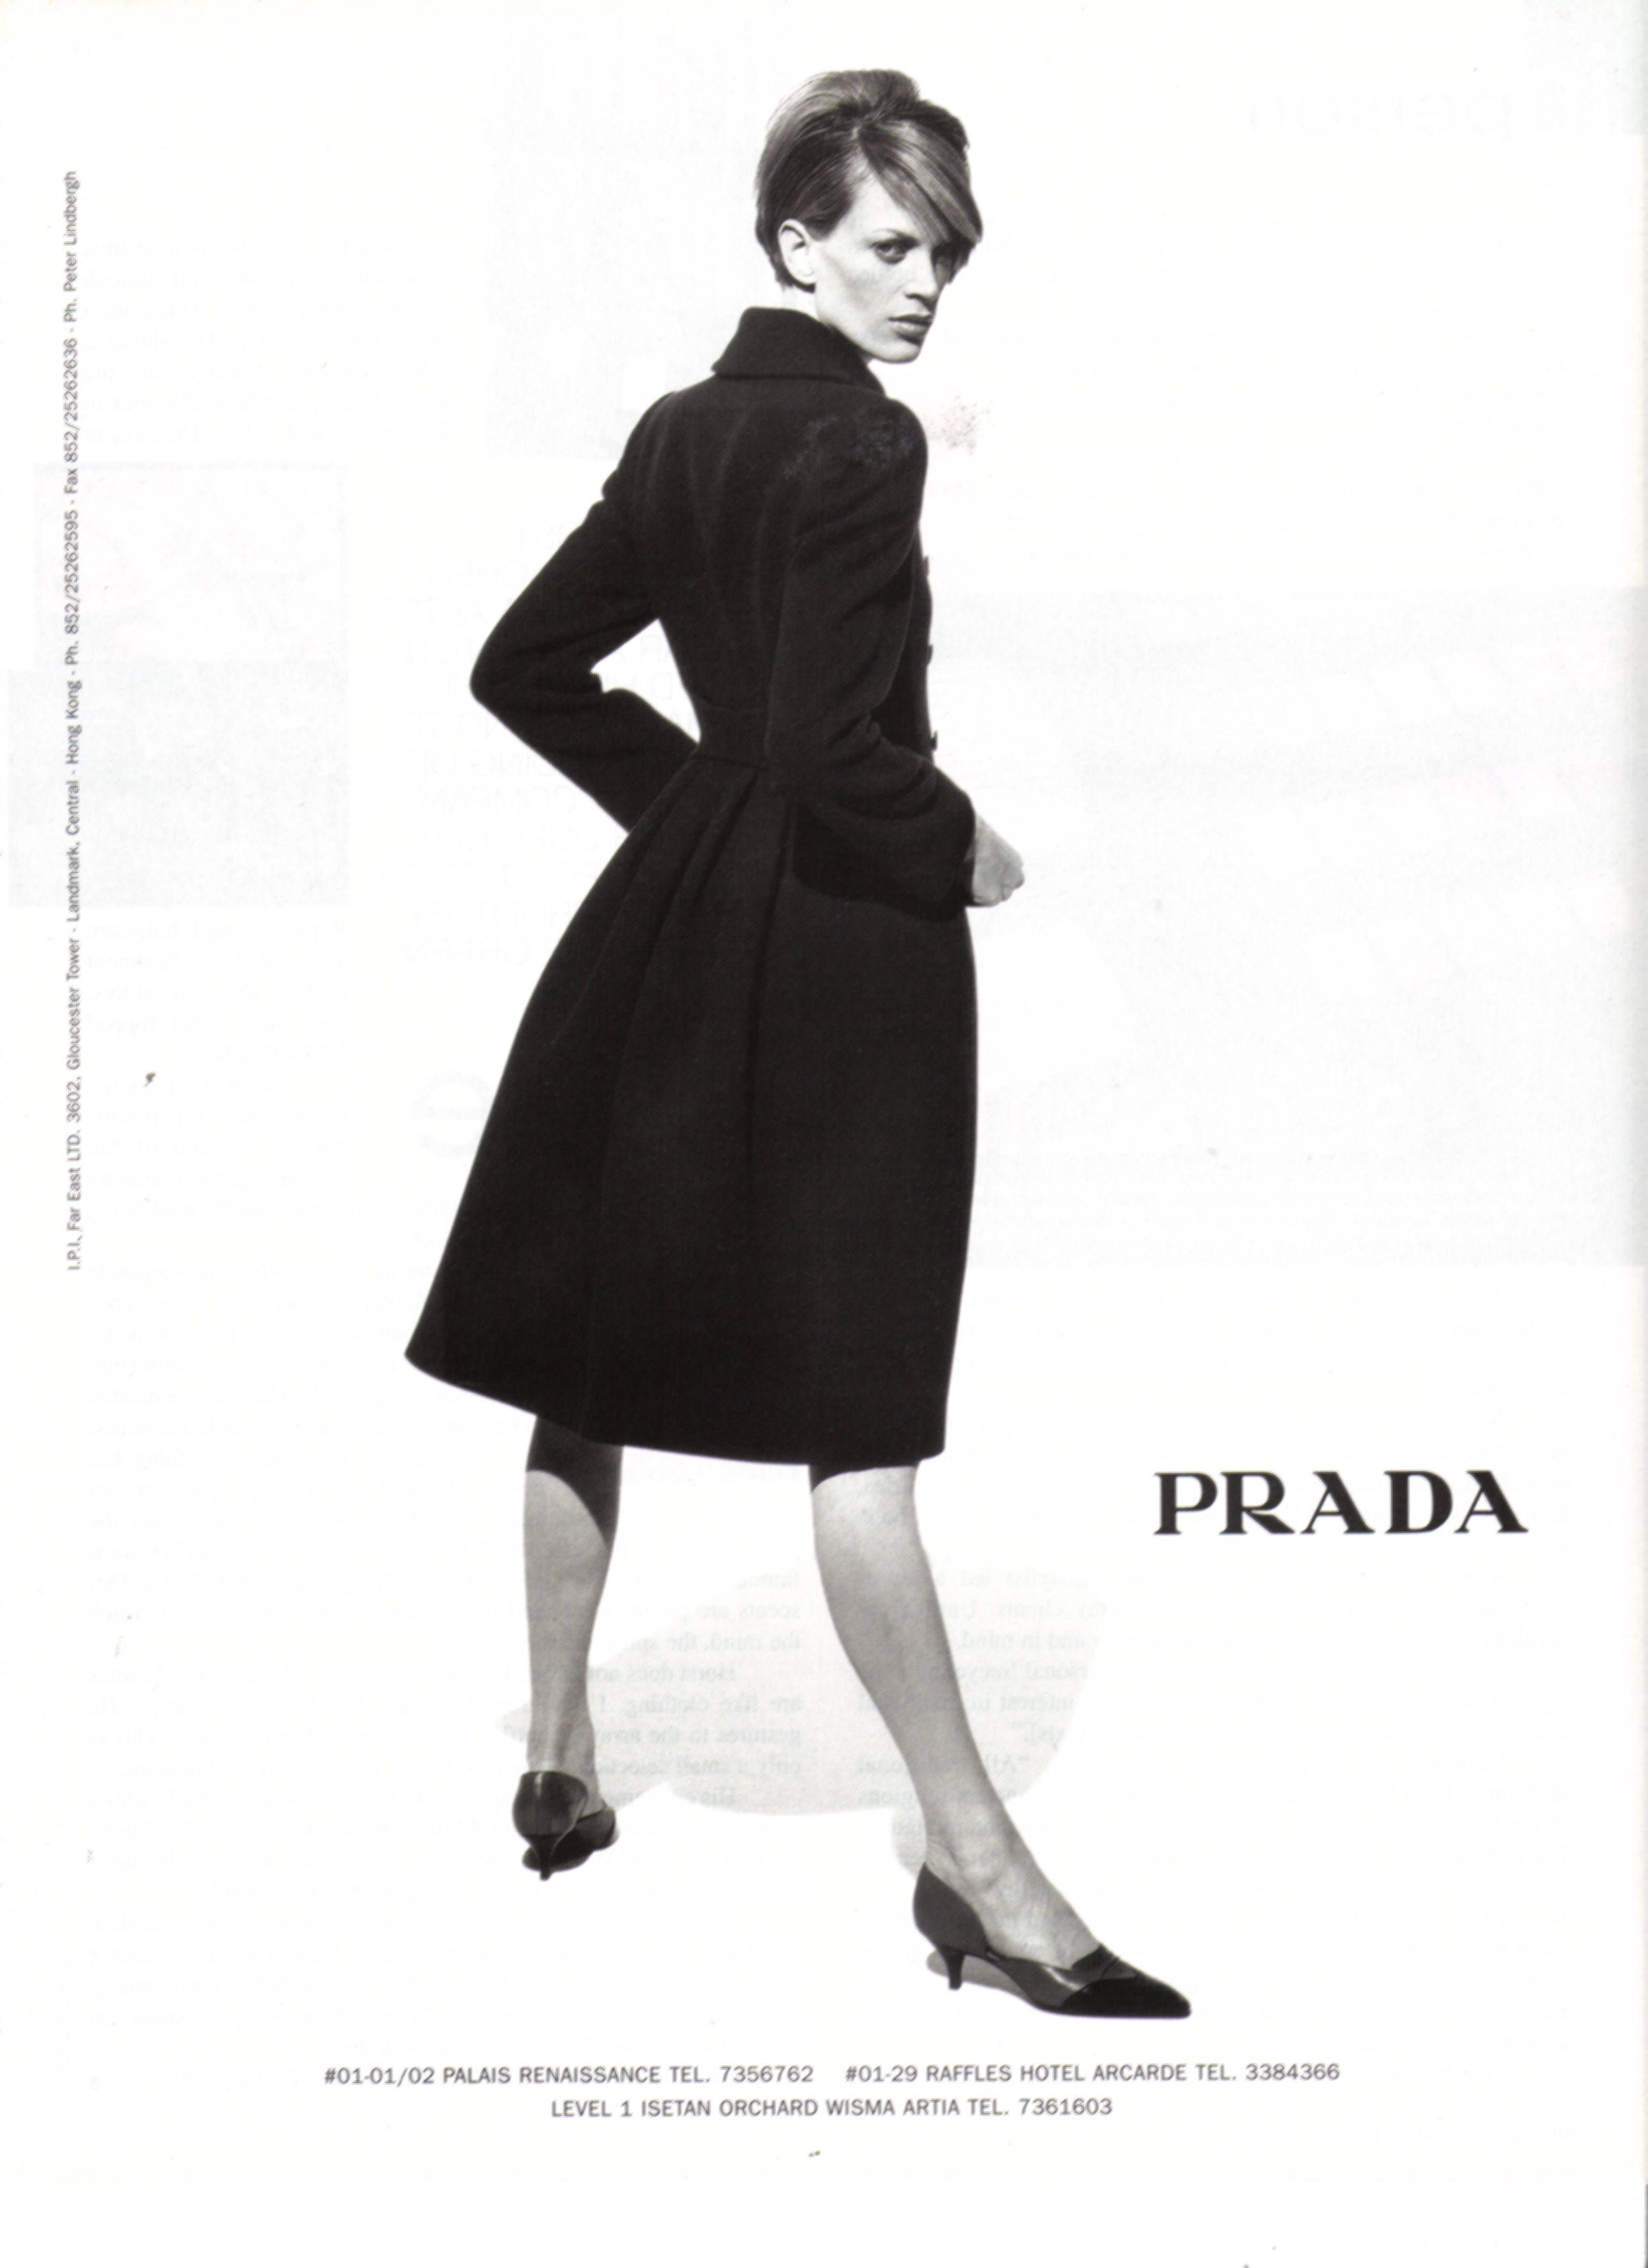 b774ebbd5a30 Prada 1990s ad. Minimalist design element in the chic plain black coat.  Understated yet powerful because the design is a classic. Neutral colors  and modest ...